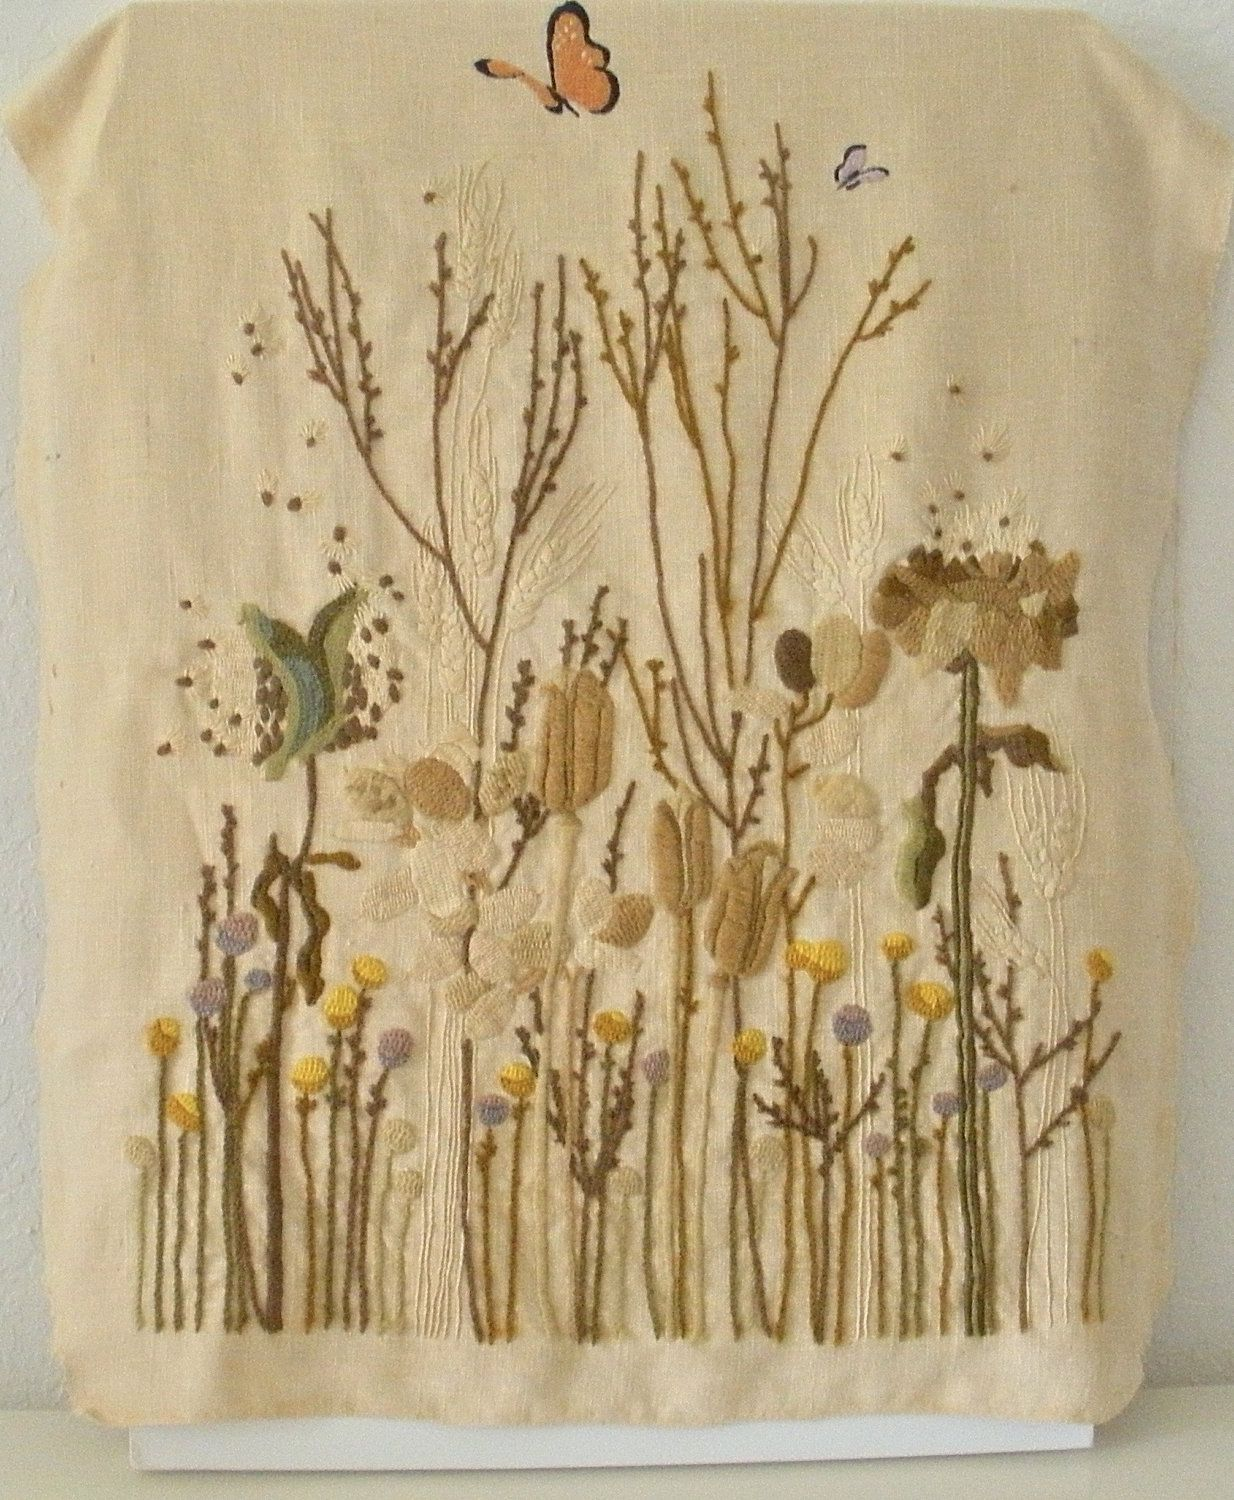 Large Handstitched Wool on Linen Tapestry.